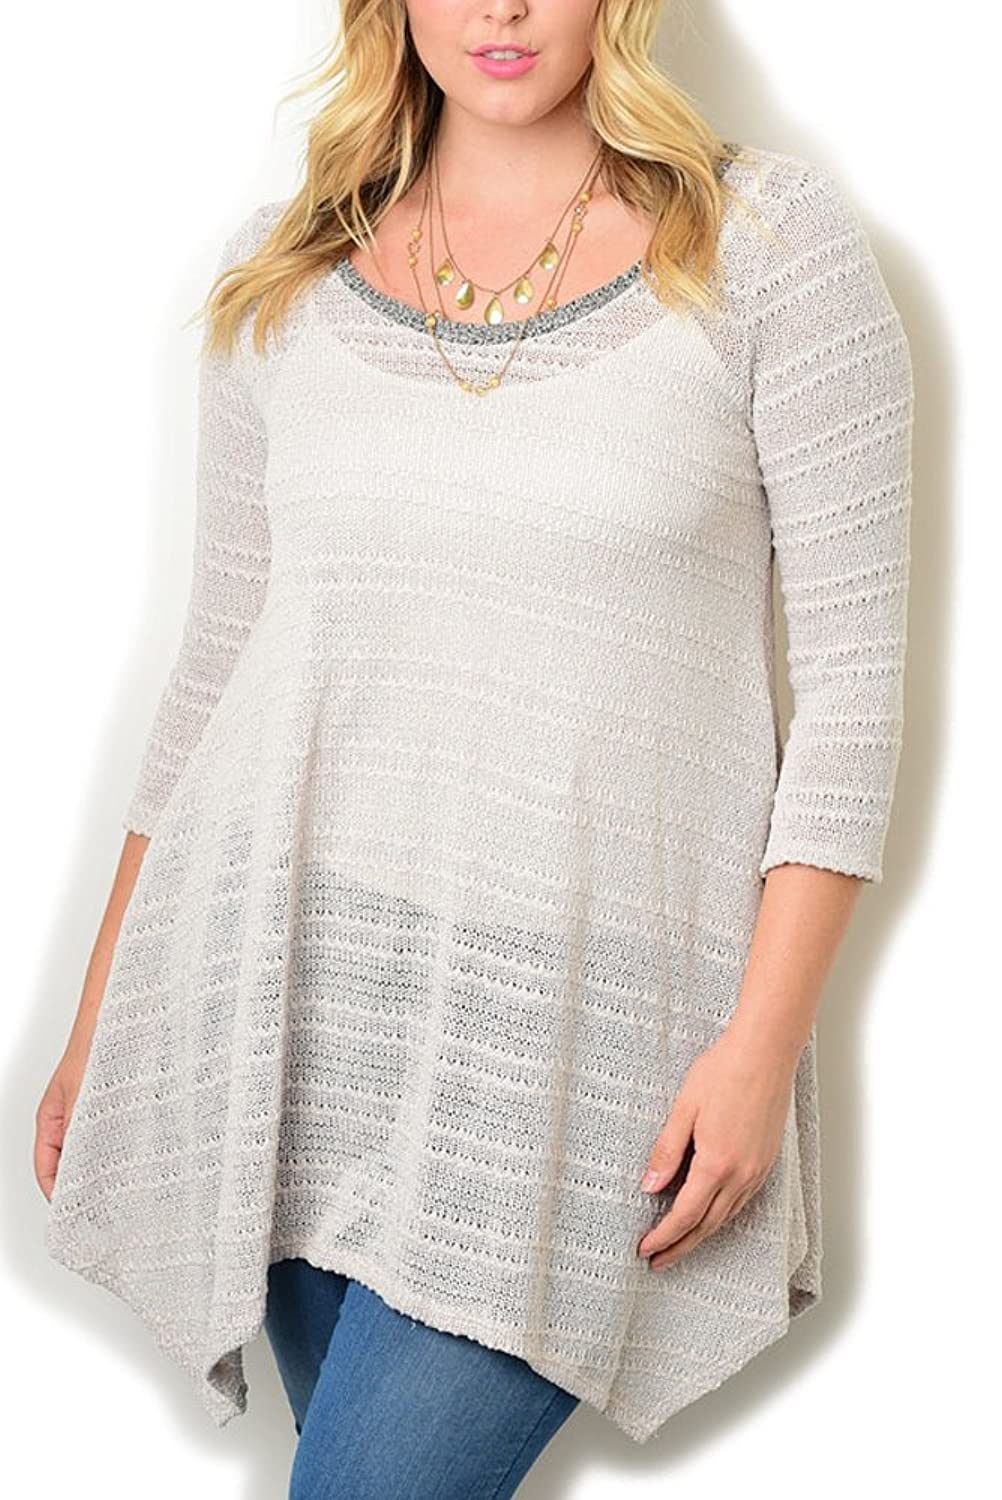 DHStyles Women's Plus Size Casual Sheer Sharktail Tunic Top